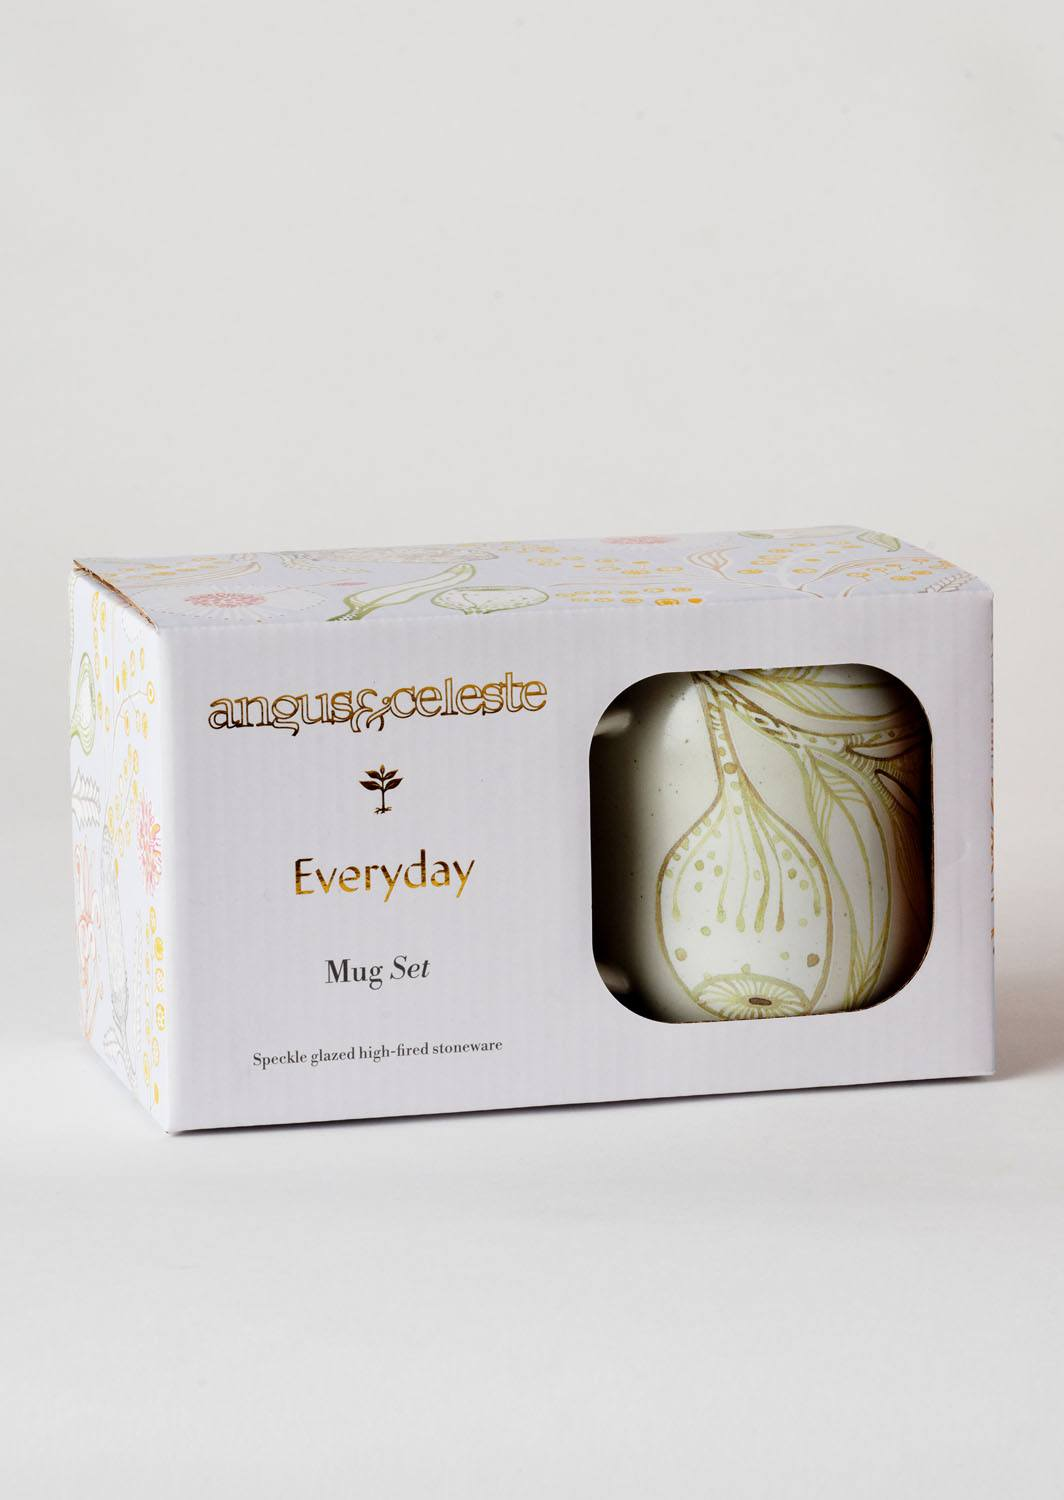 Angus & Celeste Everyday Mugs Eucalyptus Boxed